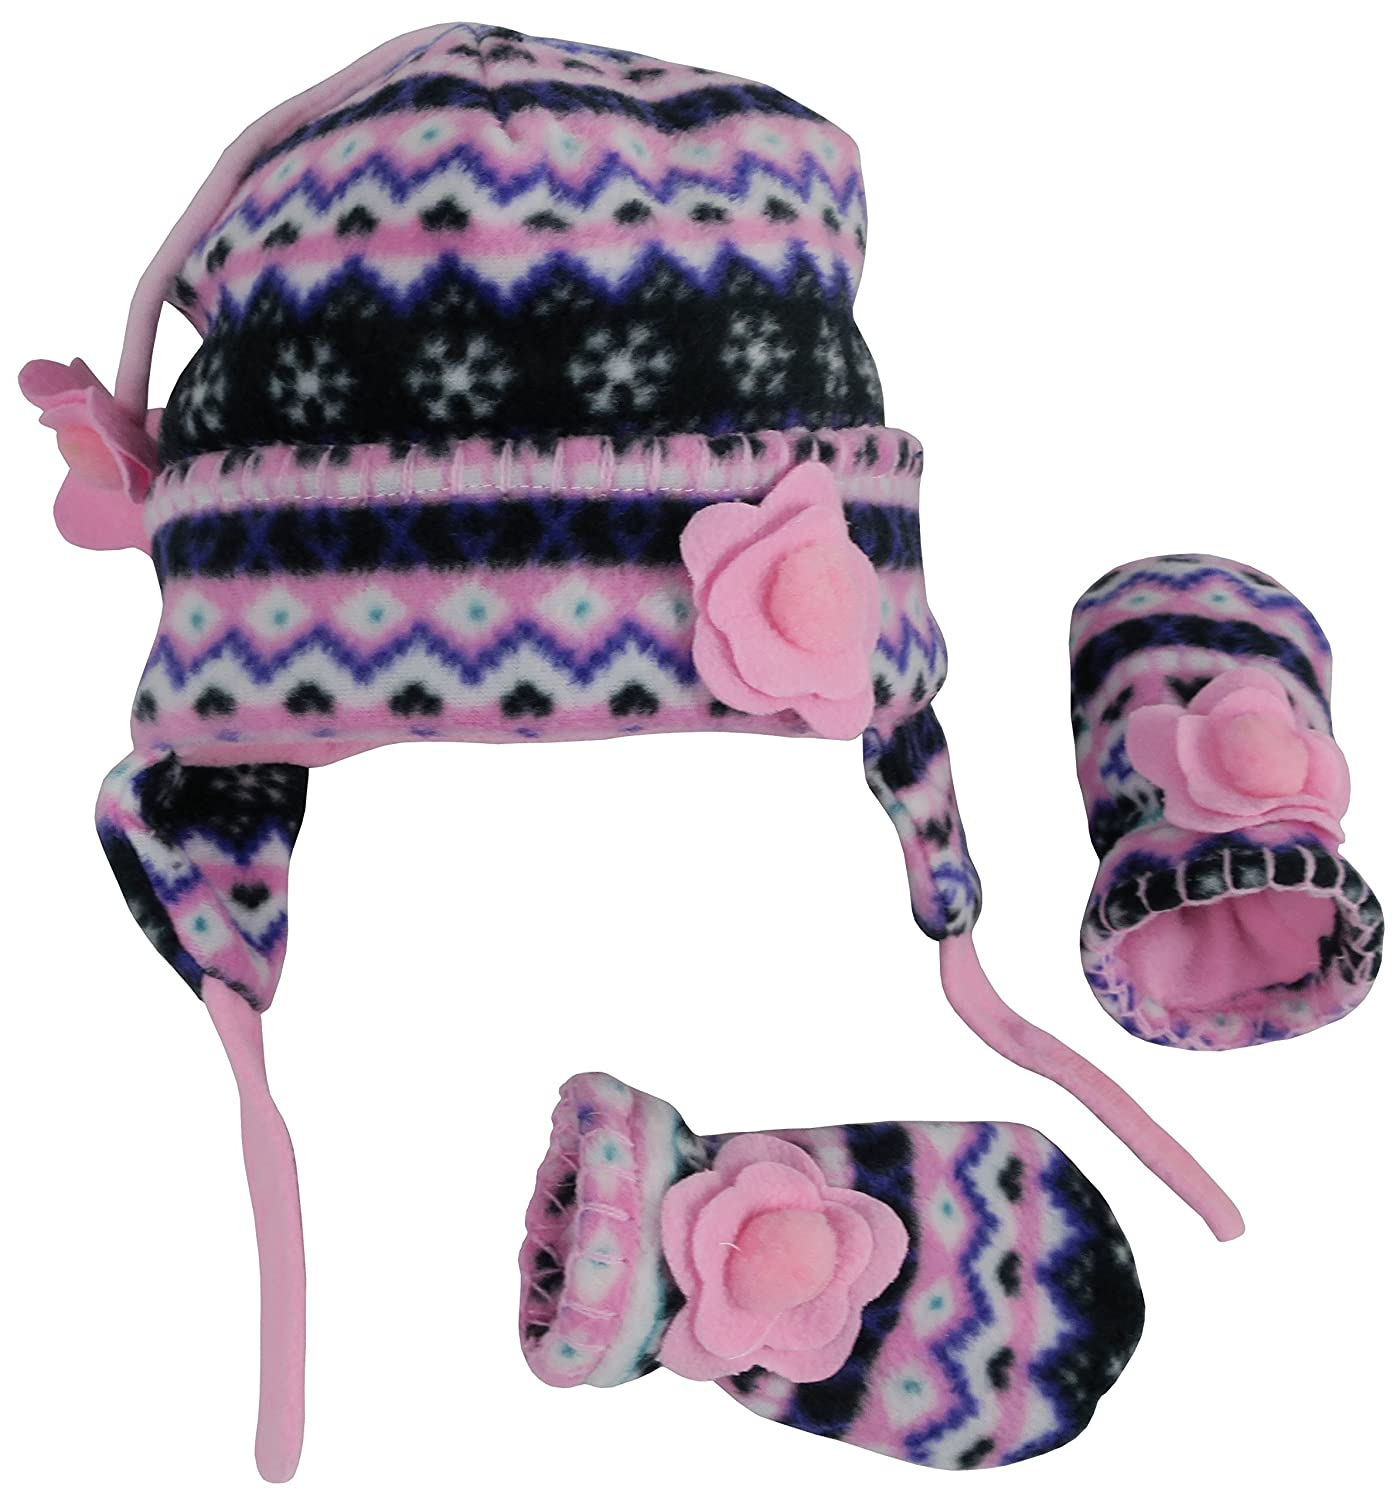 N'Ice Caps Little Girls and Baby Fair Isle Fleece Hat and Mittens Set 2401-FR